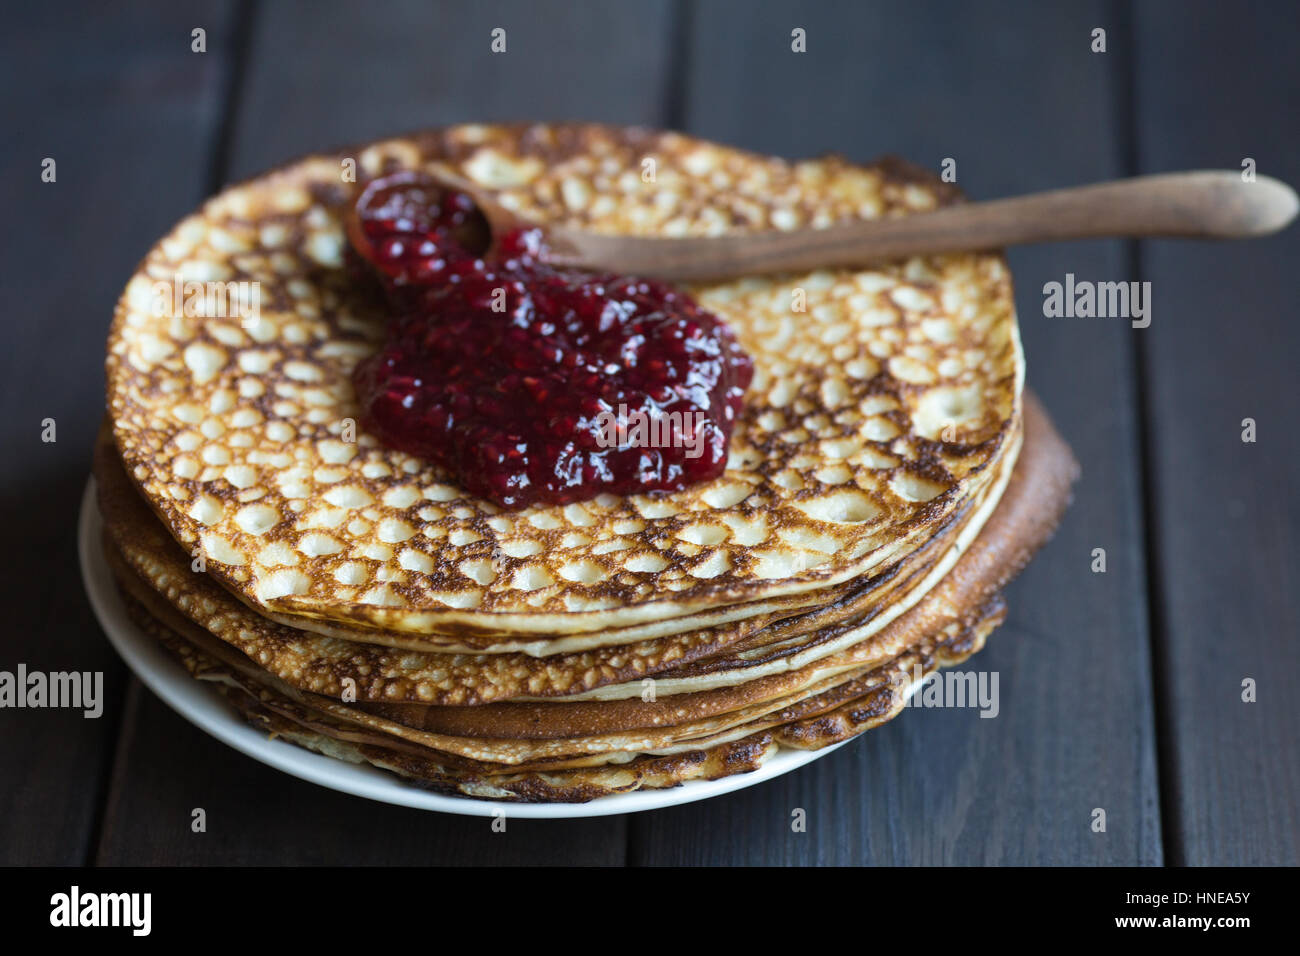 Homemade pancakes with raspberry jam on a dark wooden table. Top view with hands. Shrove Tuesday. Stock Photo